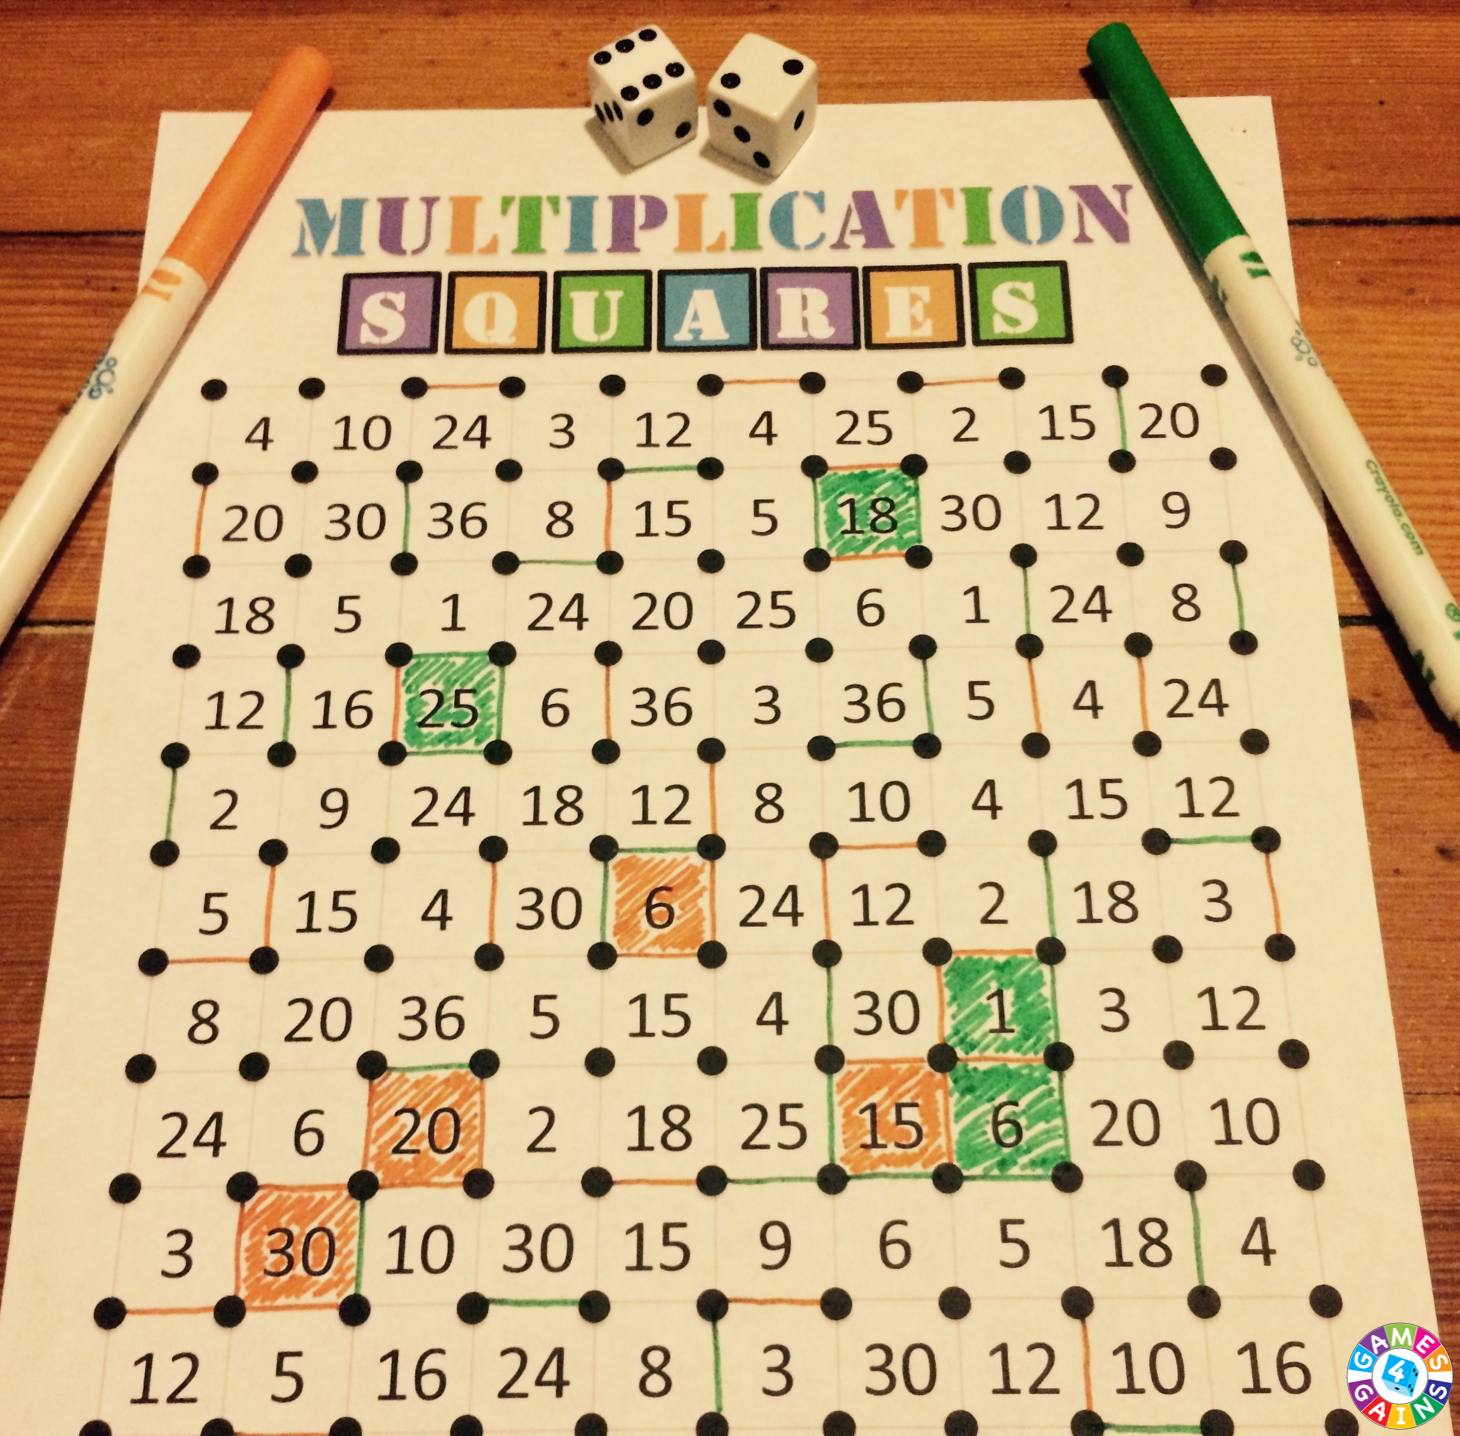 Weve Mathified The Squares Game Games 4 Gains – Multiplication Worksheet Games